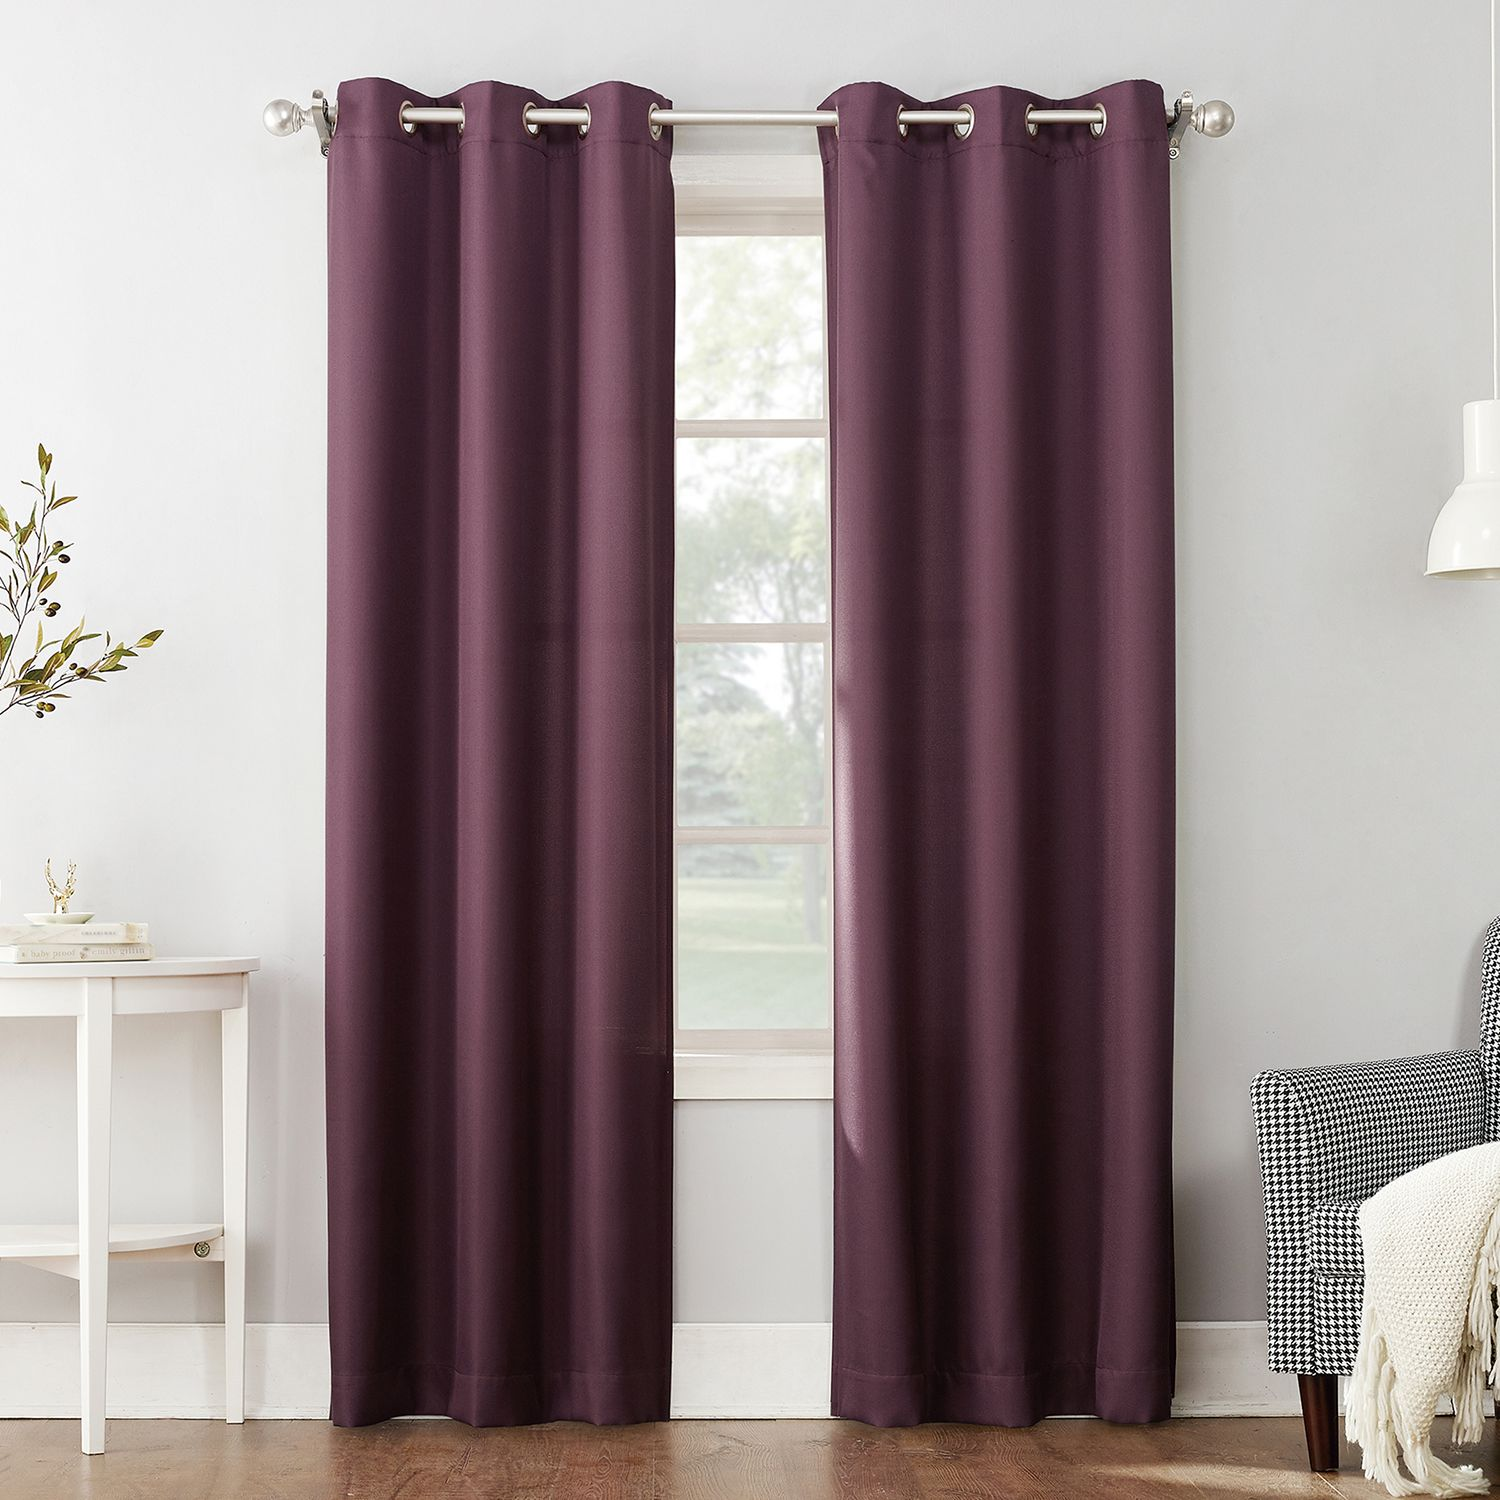 The Big One® 2 Pack Decorative Solid Window Curtains